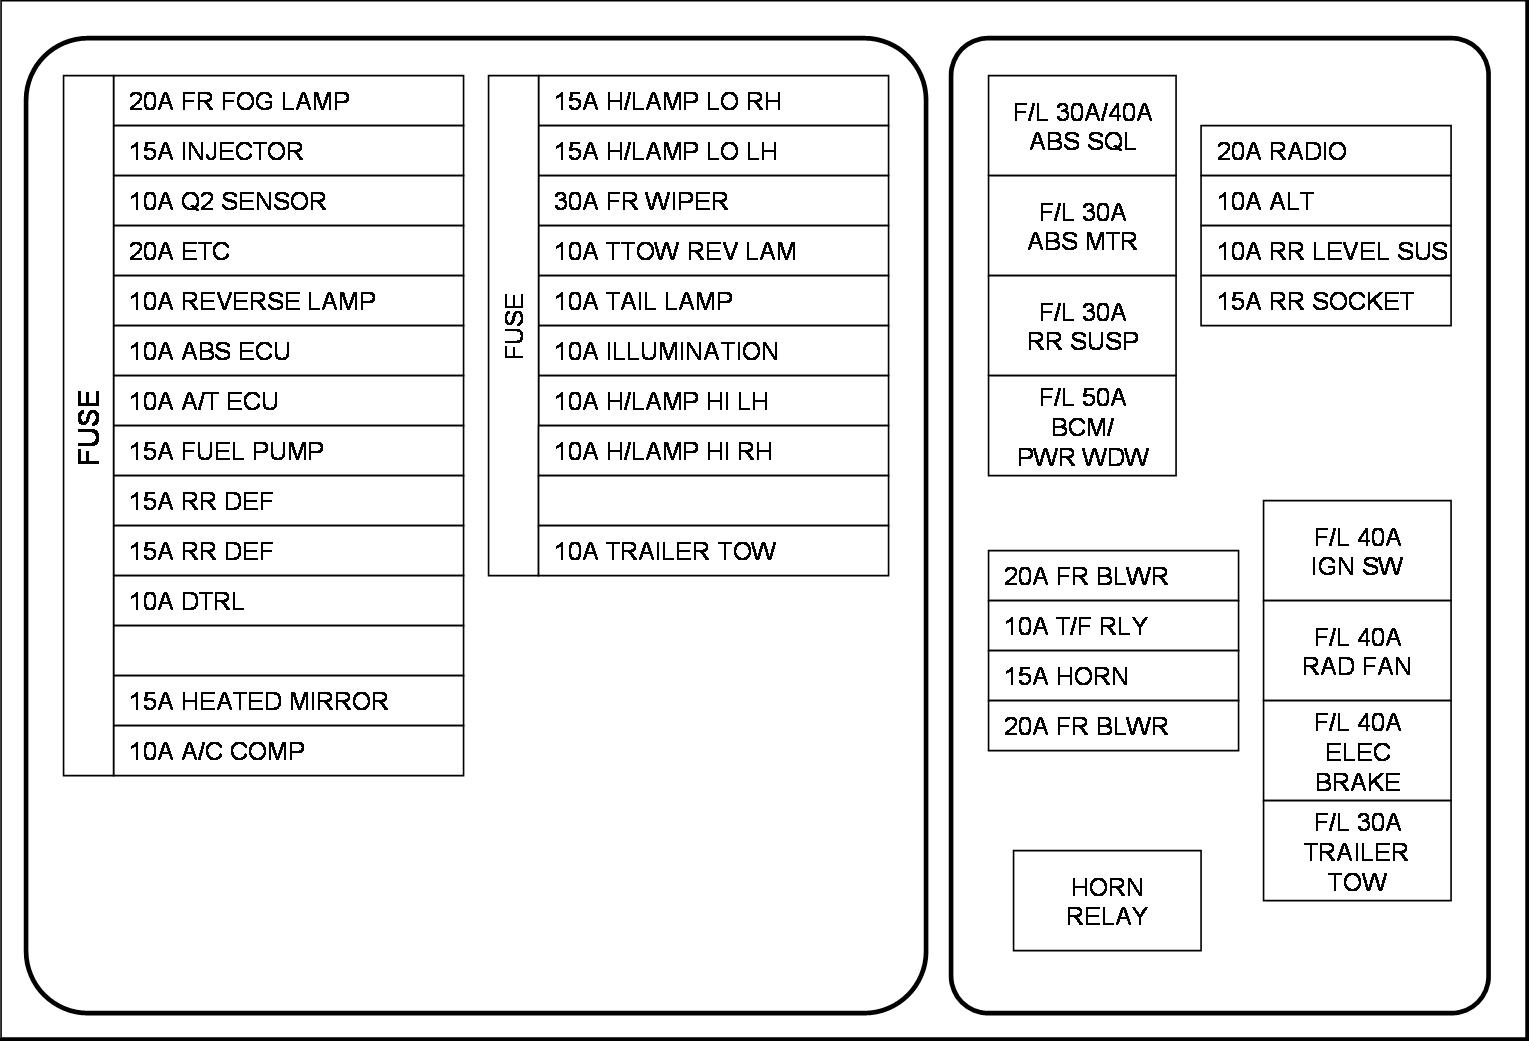 Armada Fuse Diagram Auto Electrical Wiring Nissan Titan Replacement Guide 2004 To 4900 International Truck For Wipers